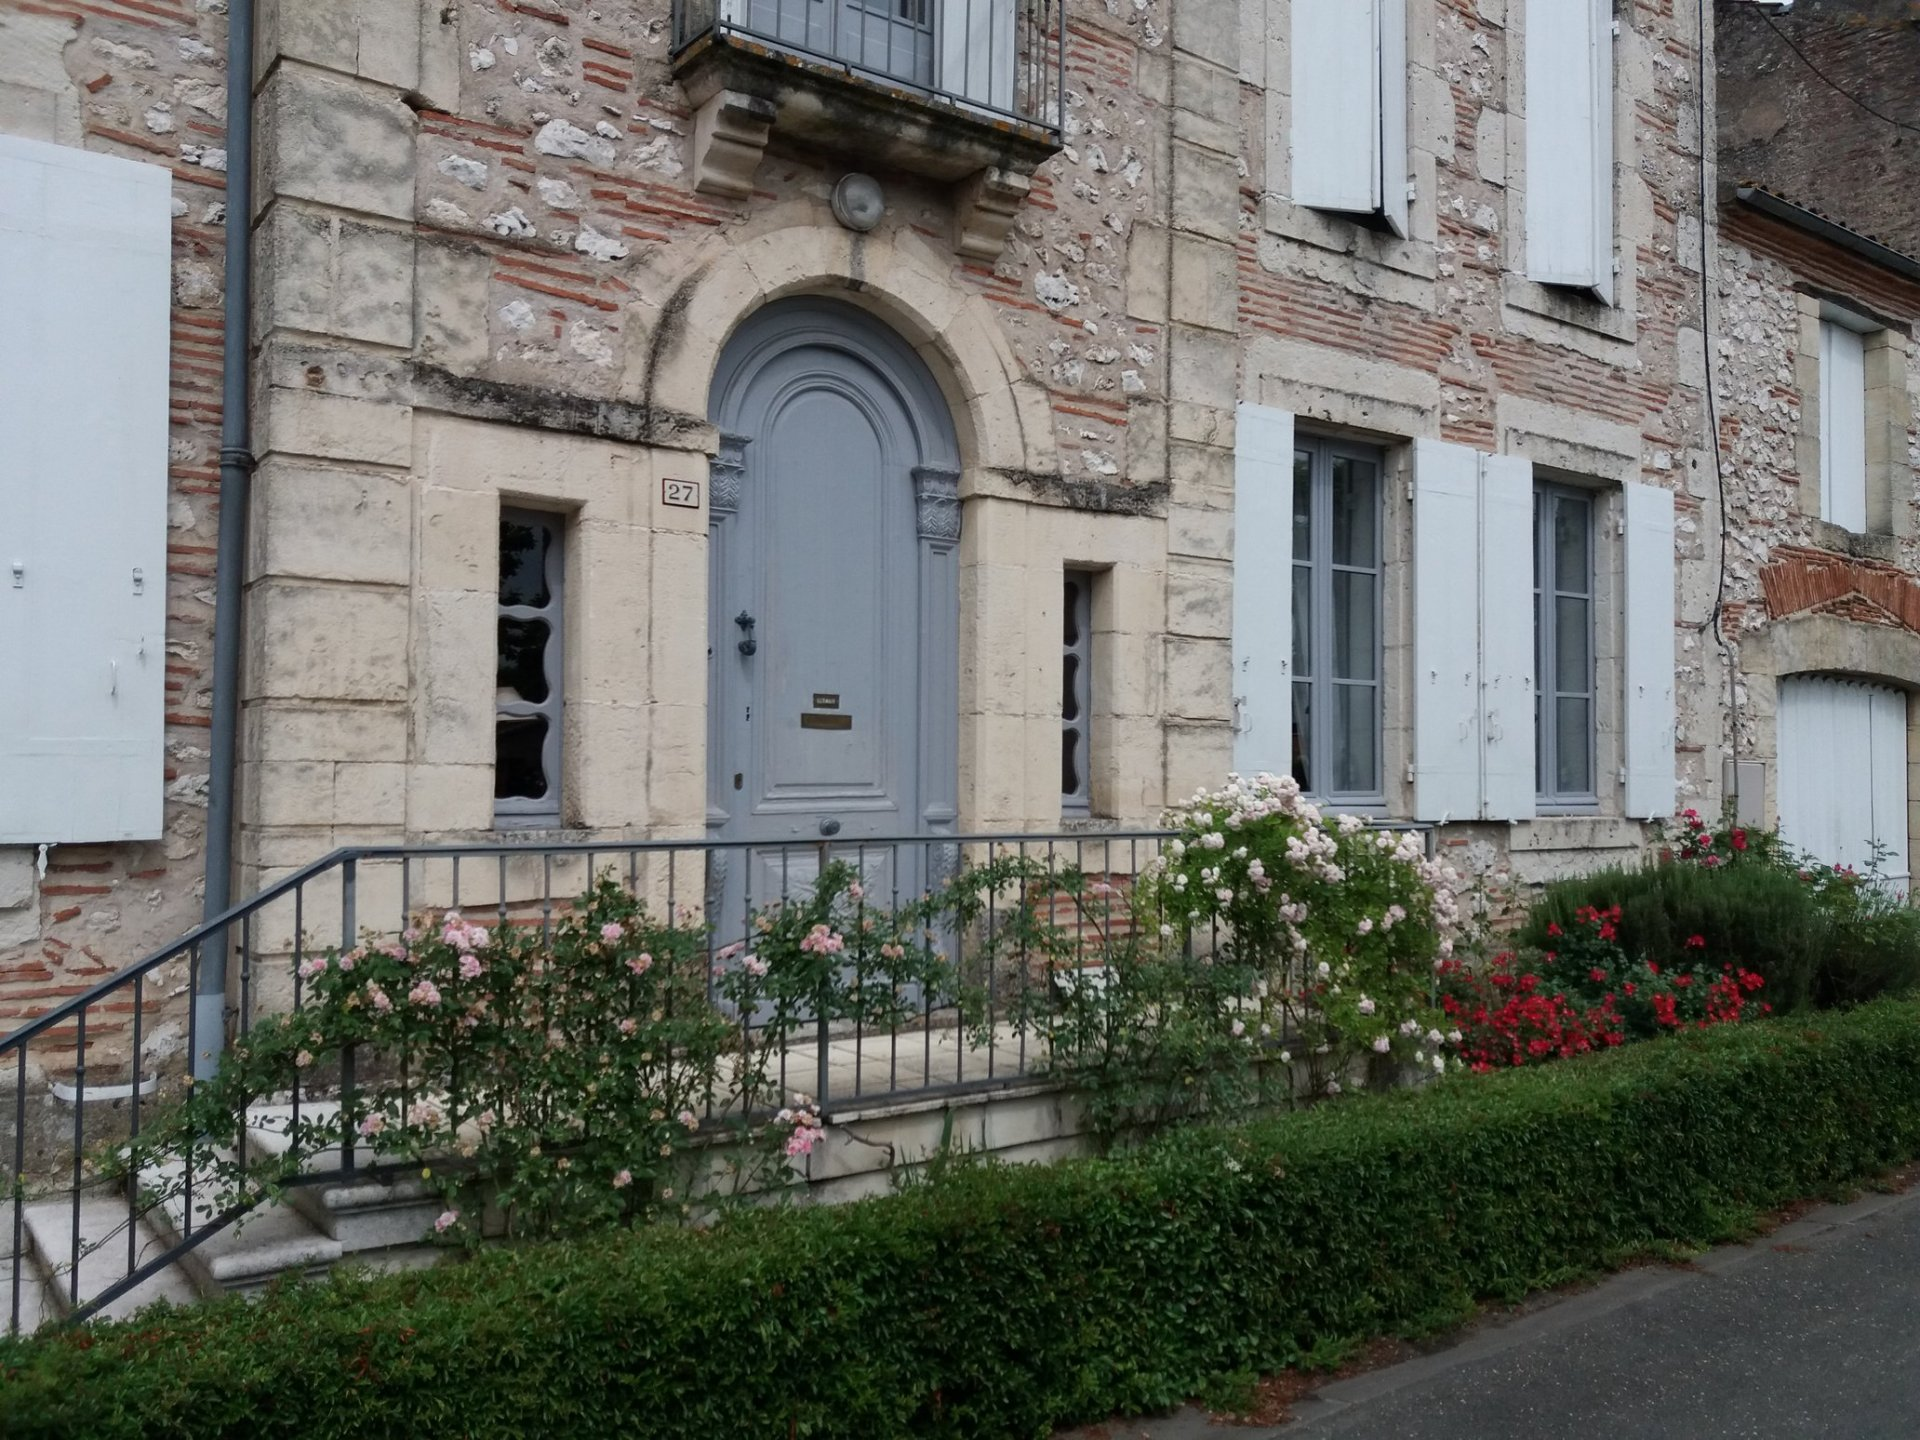 Beautiful maison de maitre in charming little village situated on the border of the river Lot